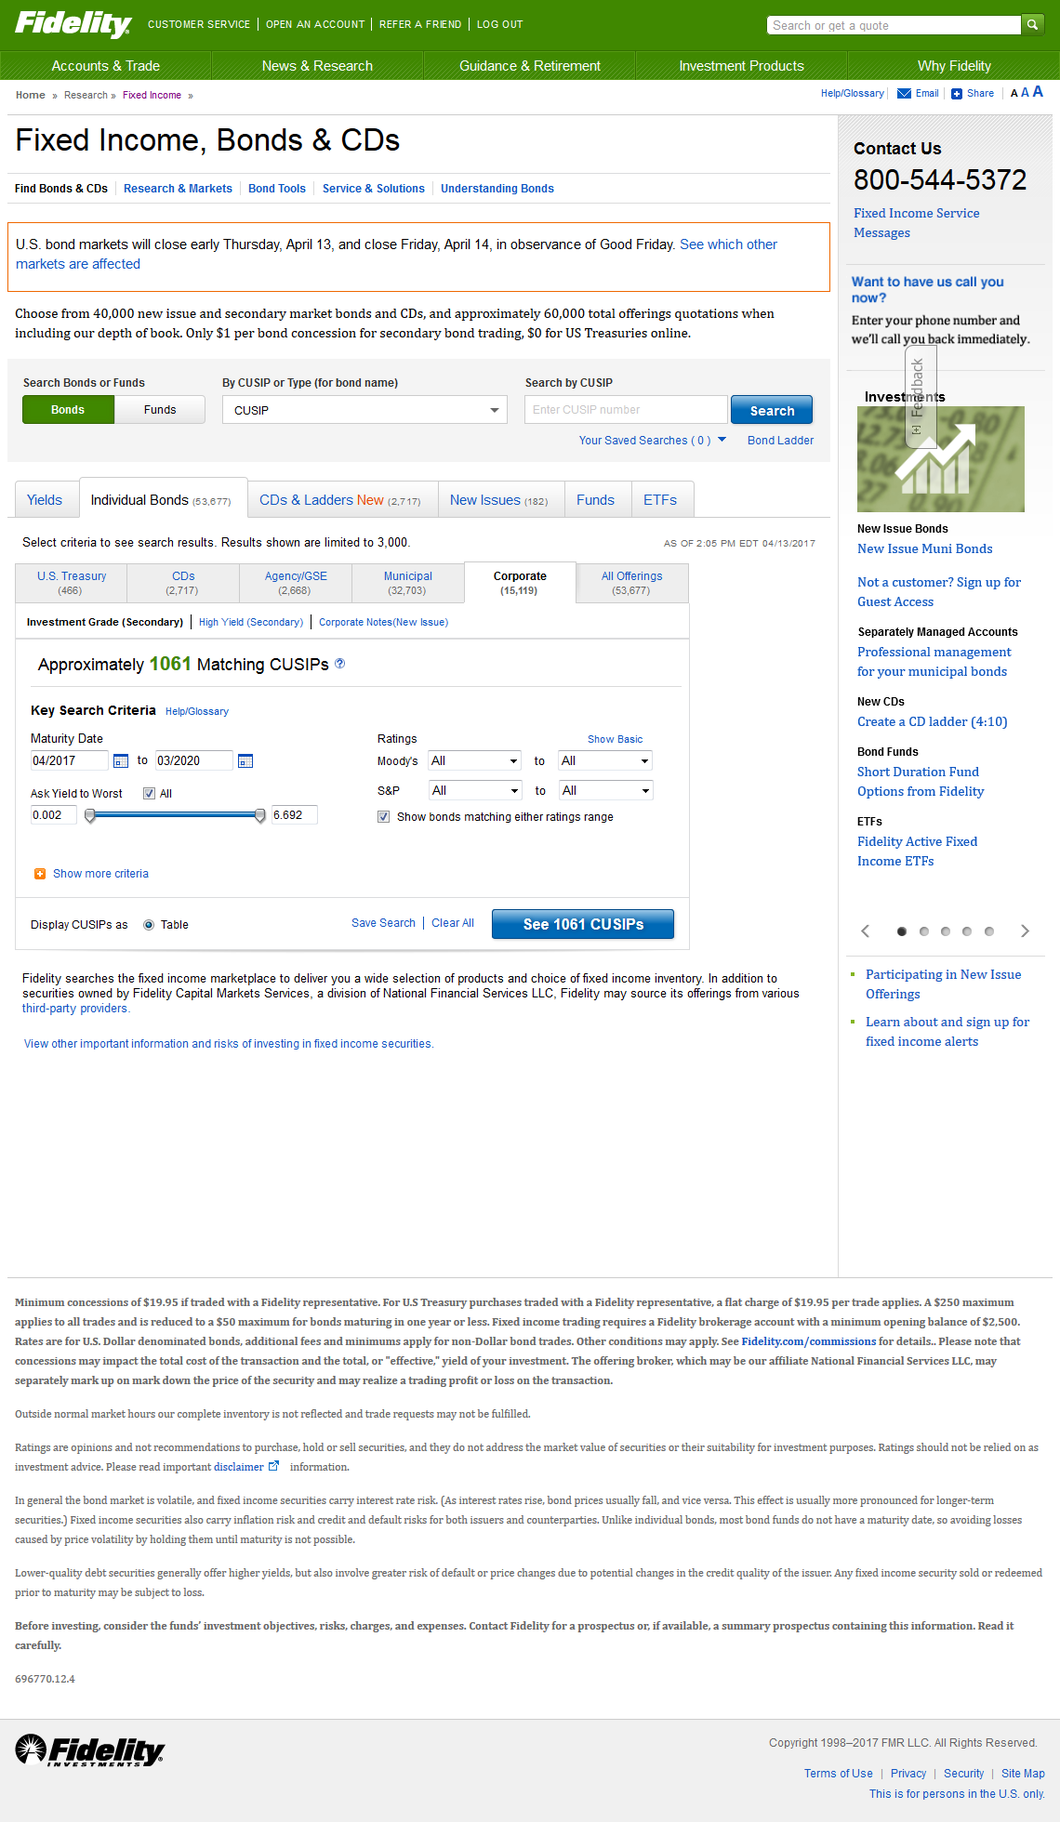 view of searching fixed income, bonds, and CDs tool and feature on Fidelity